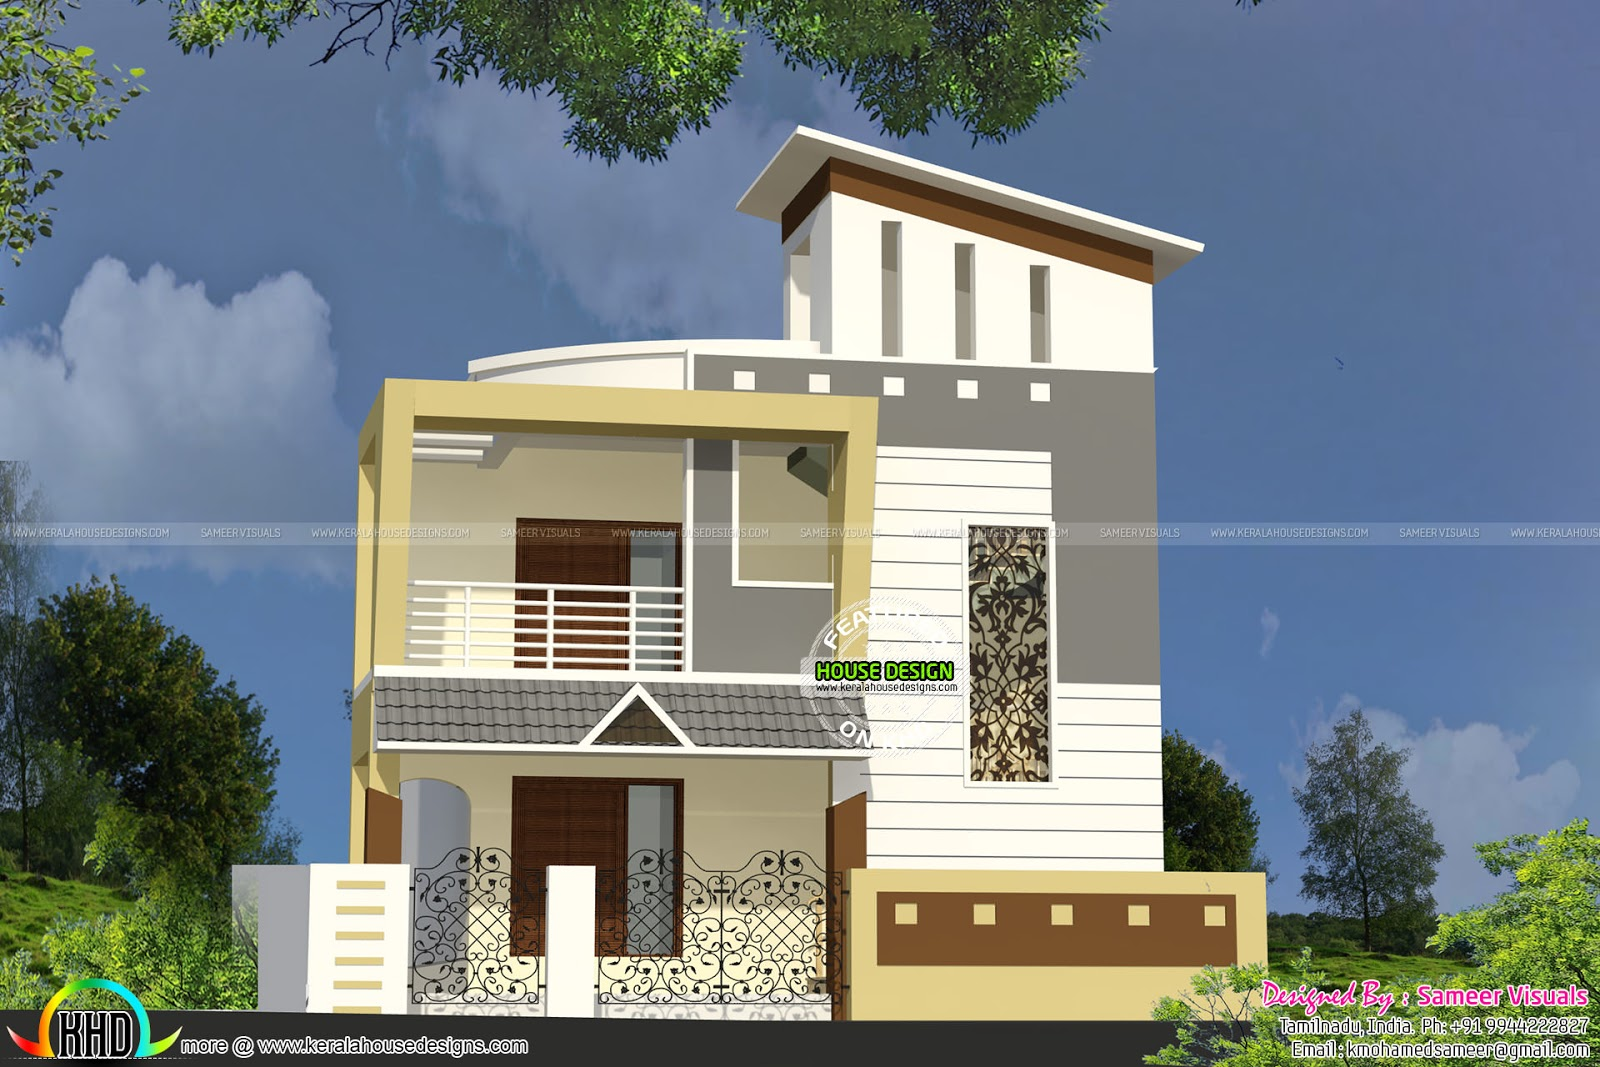 Double floor small home kerala home design and floor plans for Front look of small house